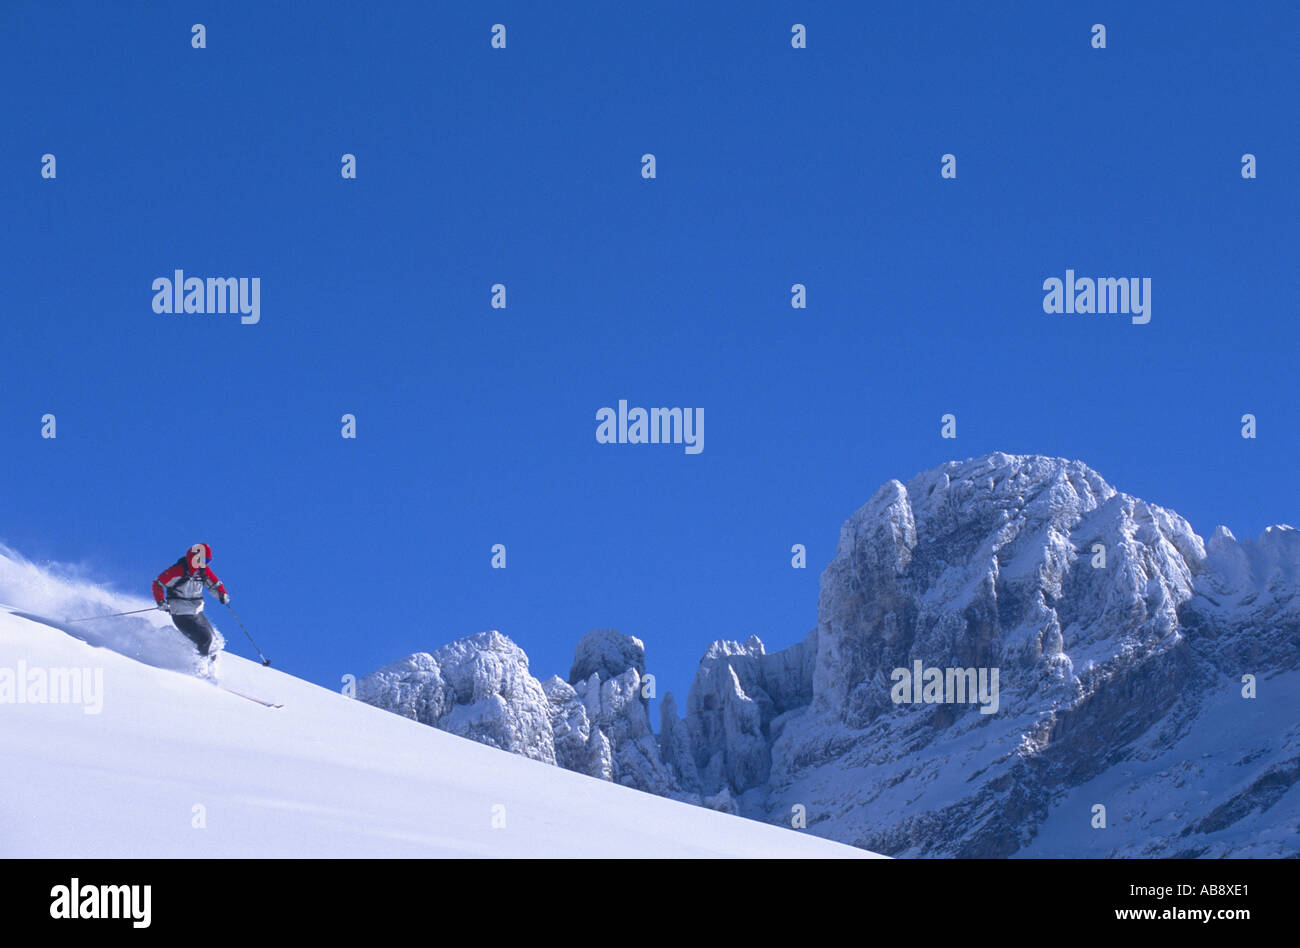 skier racing down a piste, mountain tops in the background, France, Rhne-Alpes, Courchevel. - Stock Image